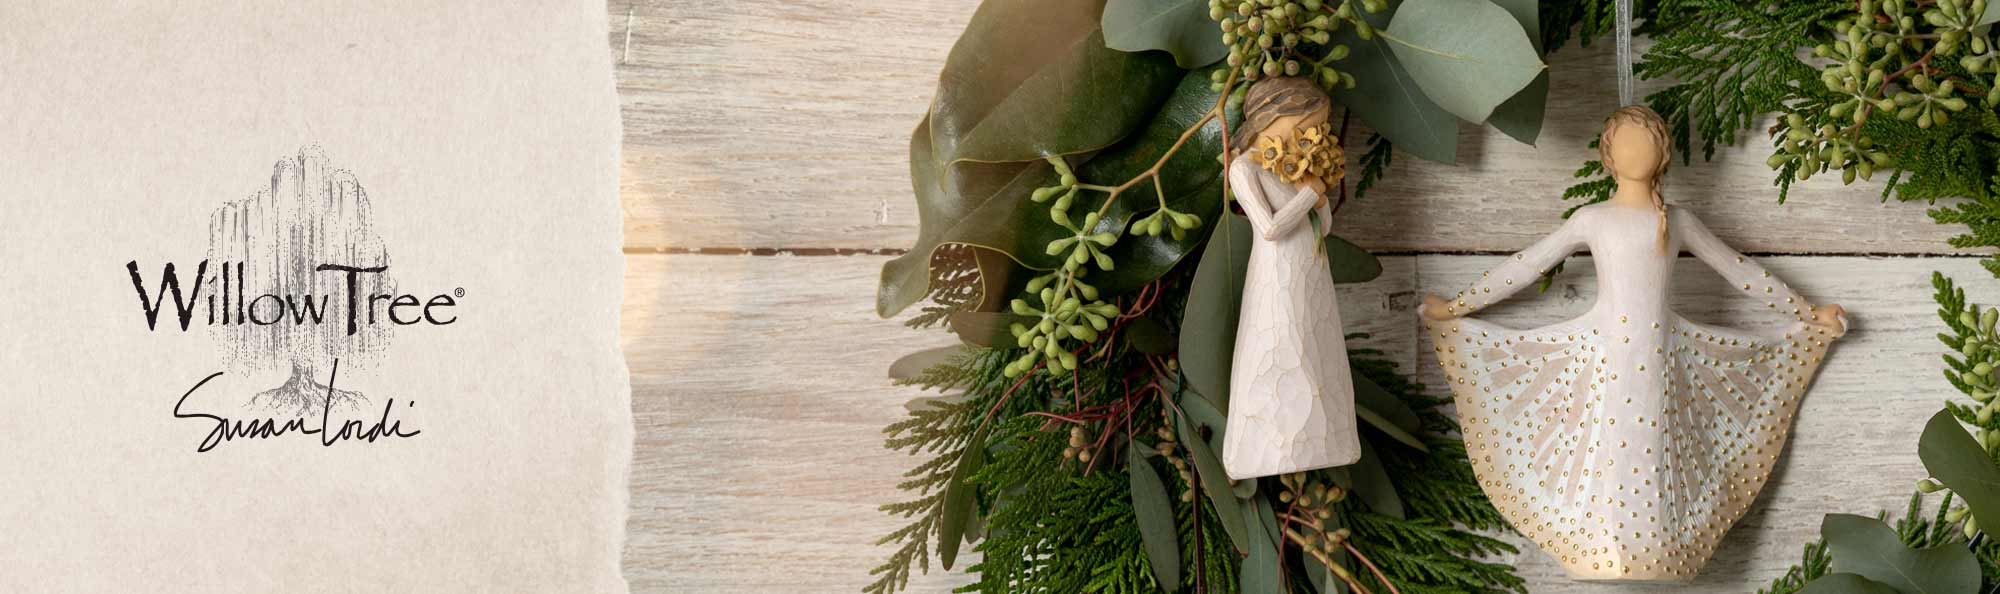 Willow Tree by Susan Lordi. Hand carved ornament figurines of a girl holding a bouquet of flowers and a girl butterfly.